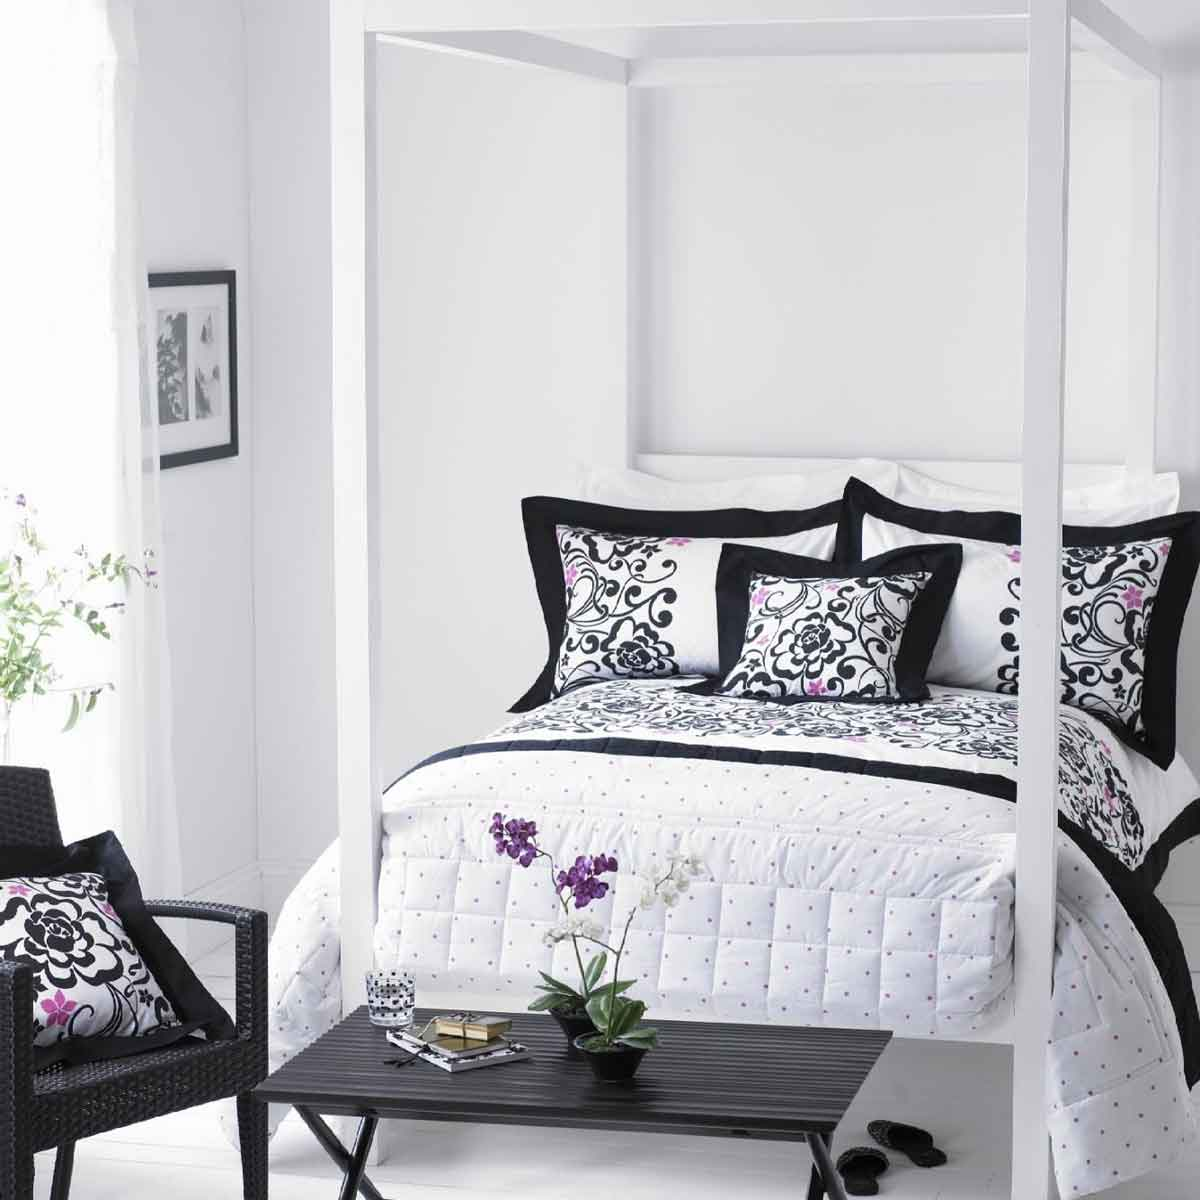 Black white grey bedroom 2017 grasscloth wallpaper for Modern feminine bedroom designs